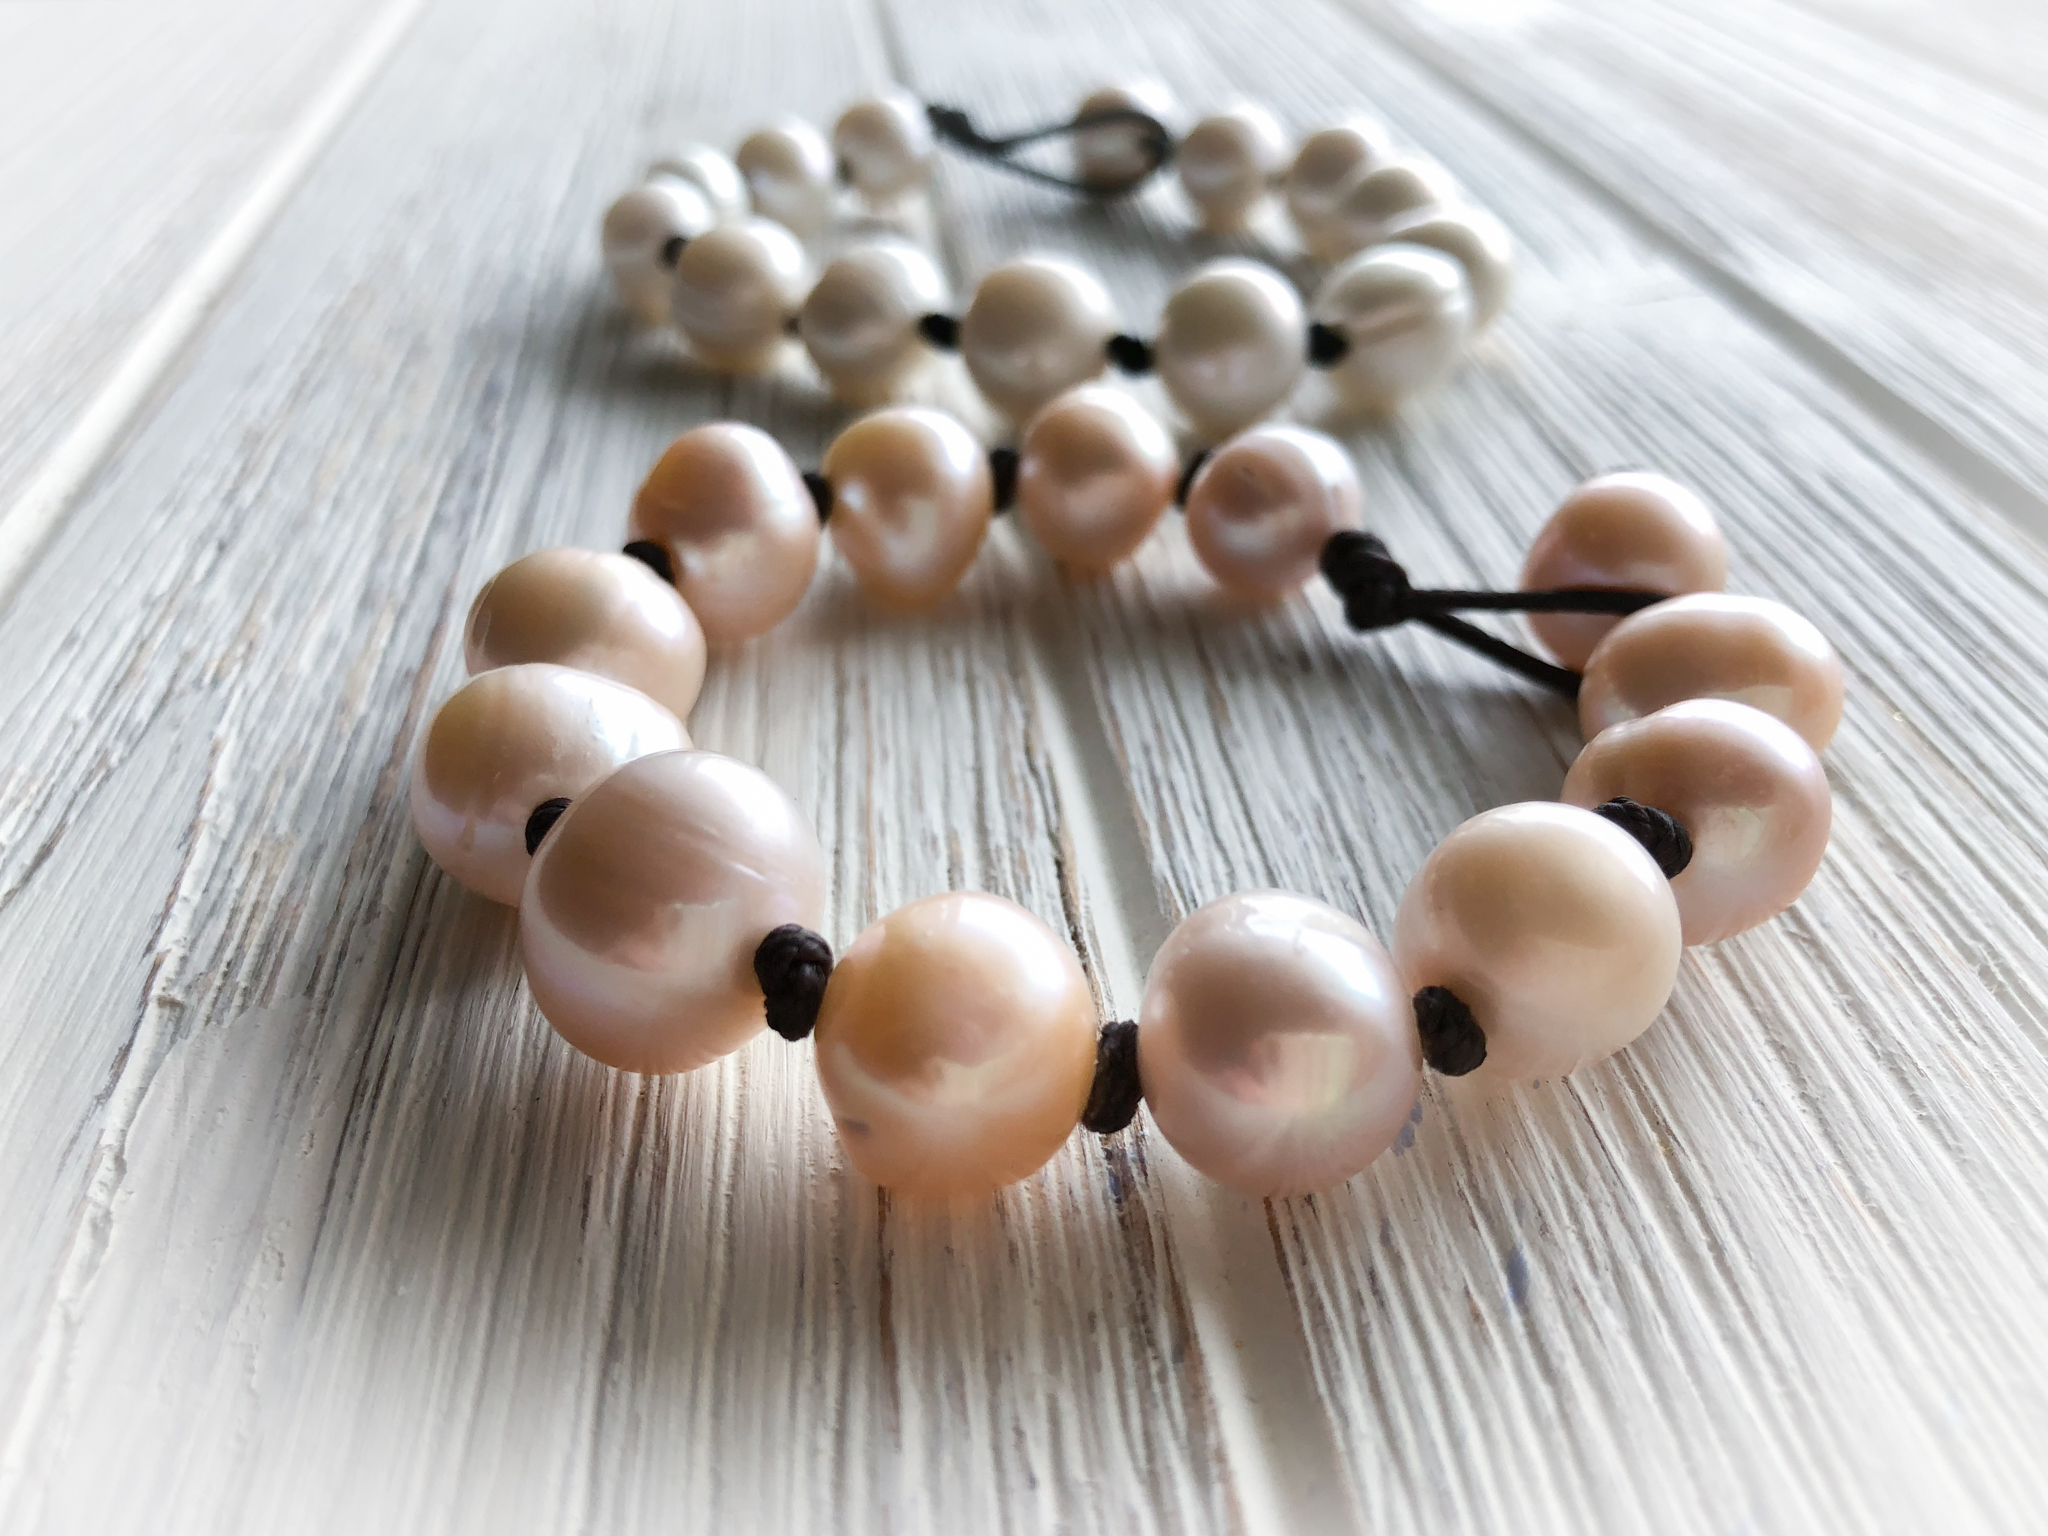 Pearl Bracelet   7 inch single cord knotted pearls available in blush or white.  To Purchase  email 88Jewels Ltd.  Please Include the name of item and color preference.